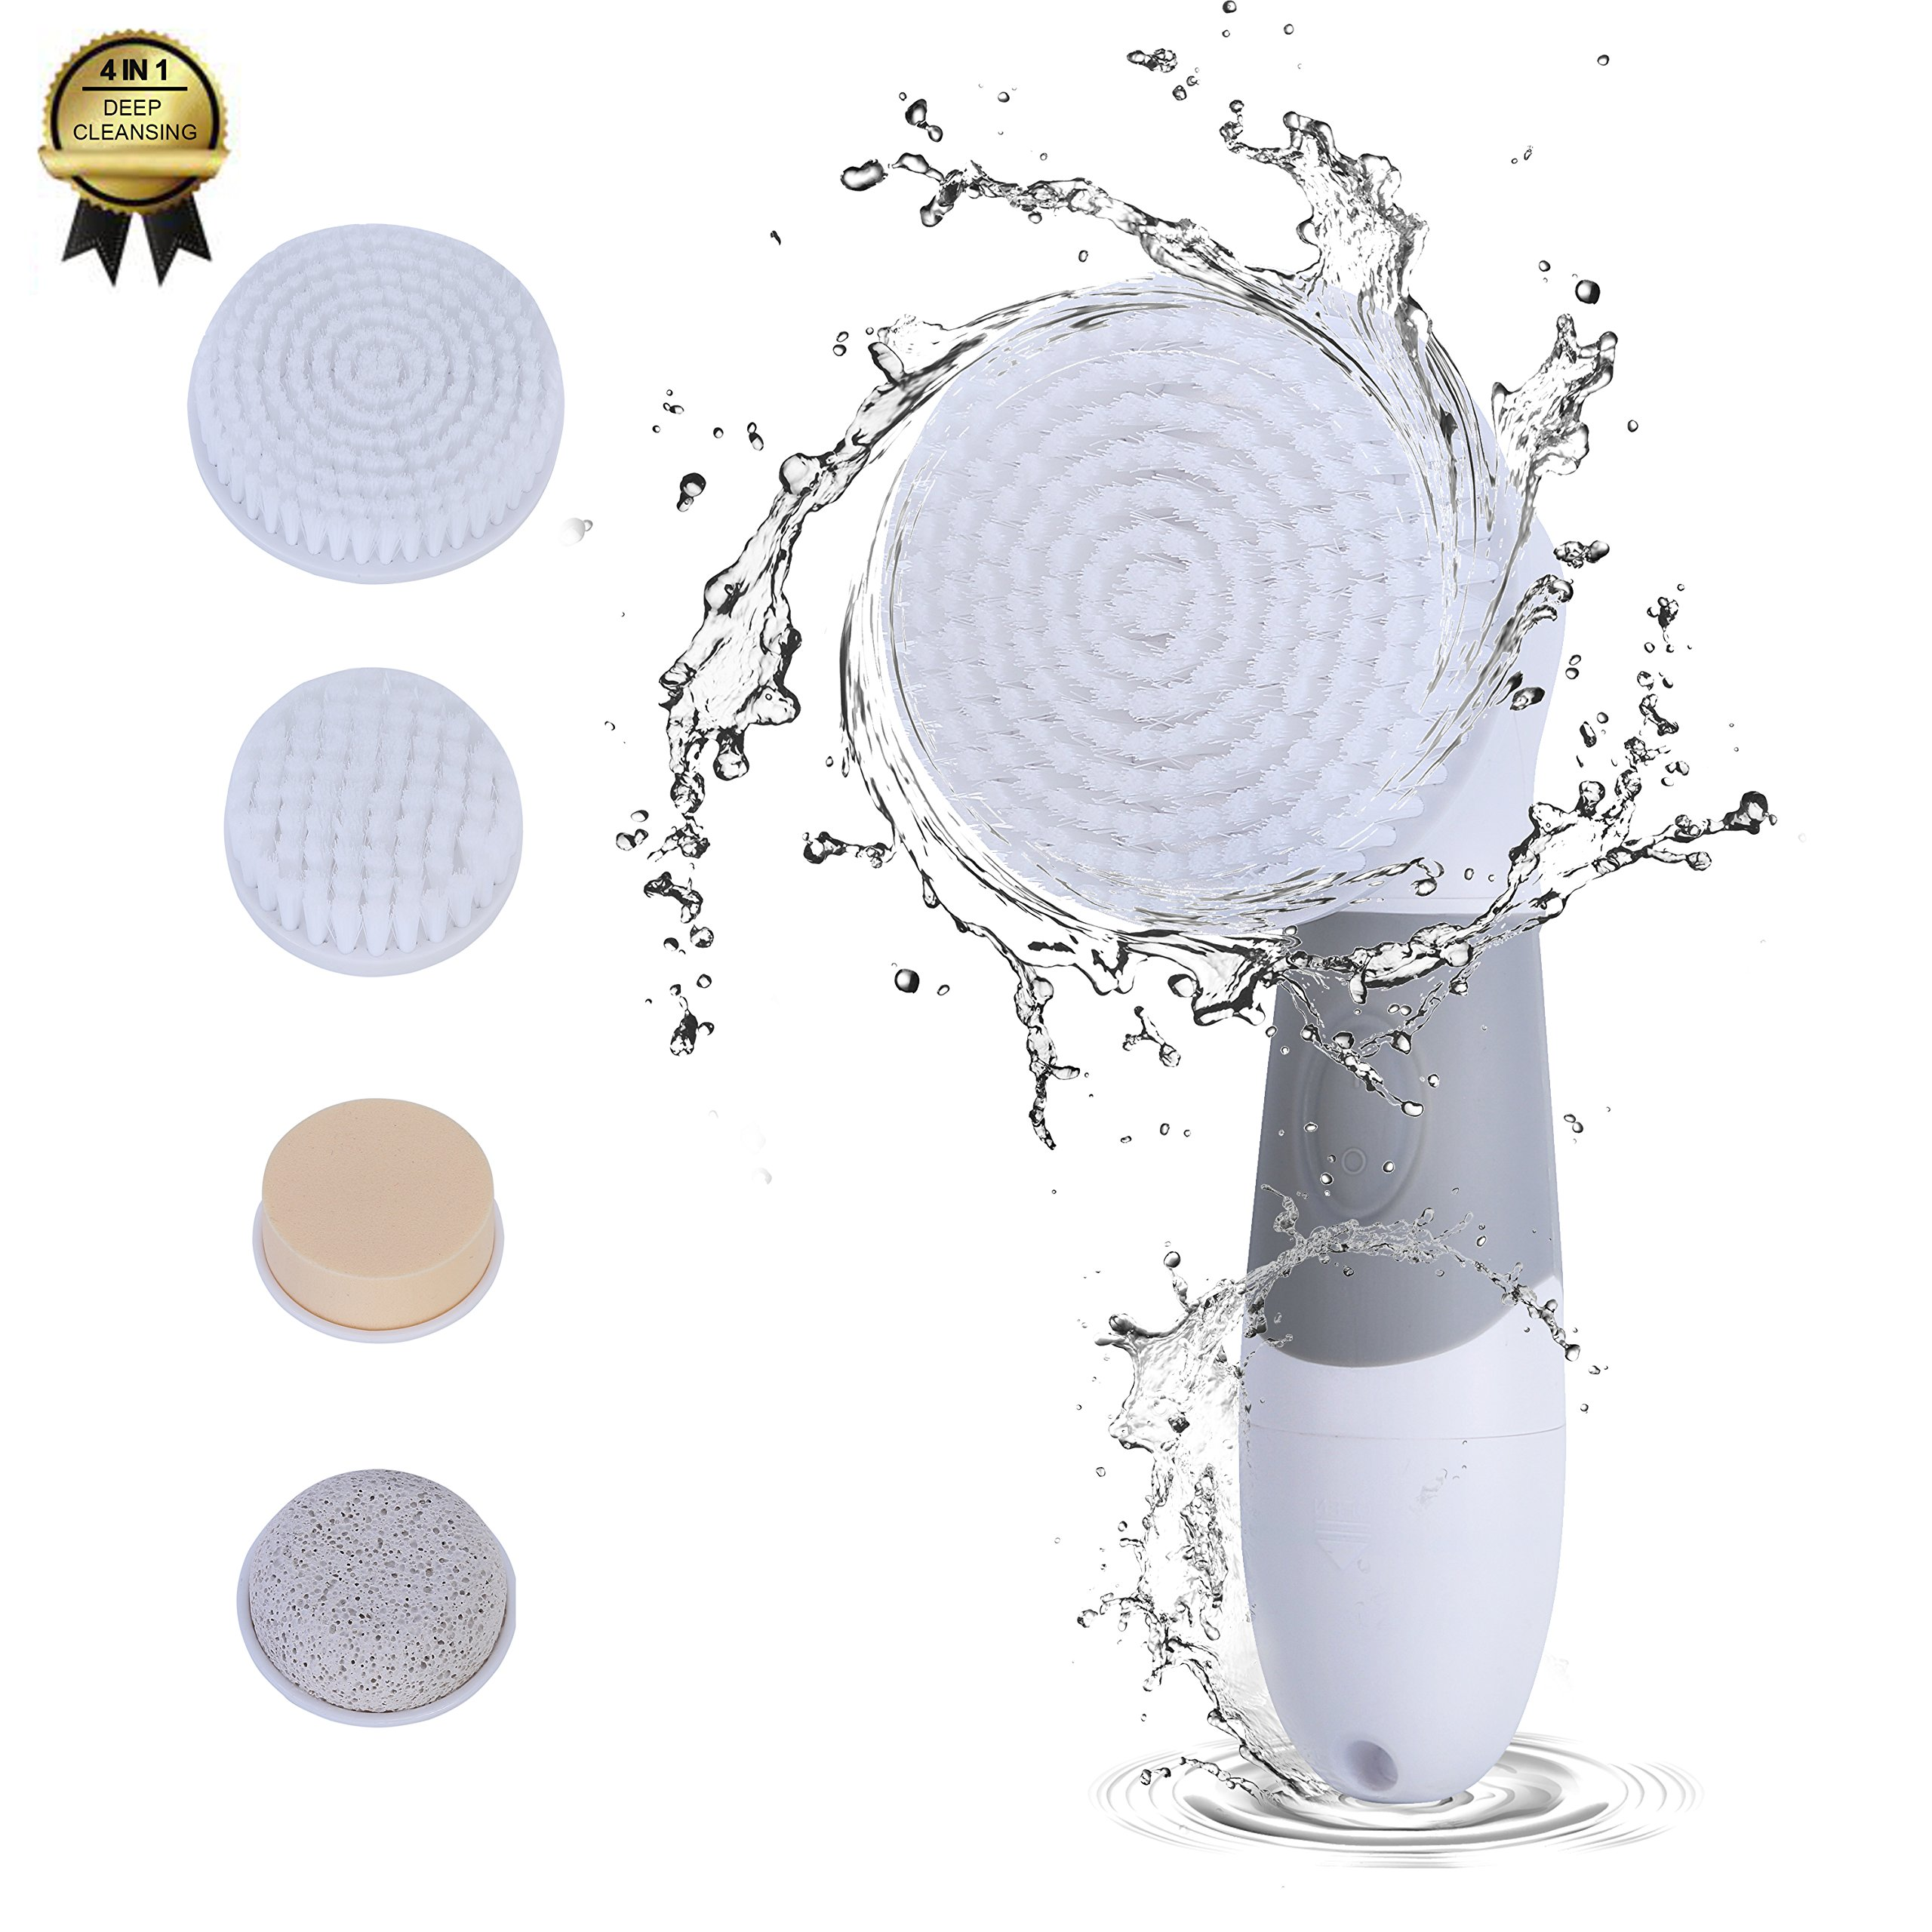 Facial Cleansing Brush Waterproof Electric 4 In 1 Face Brush Set Deep Cleaner For Exfoliating Removing Blackhead